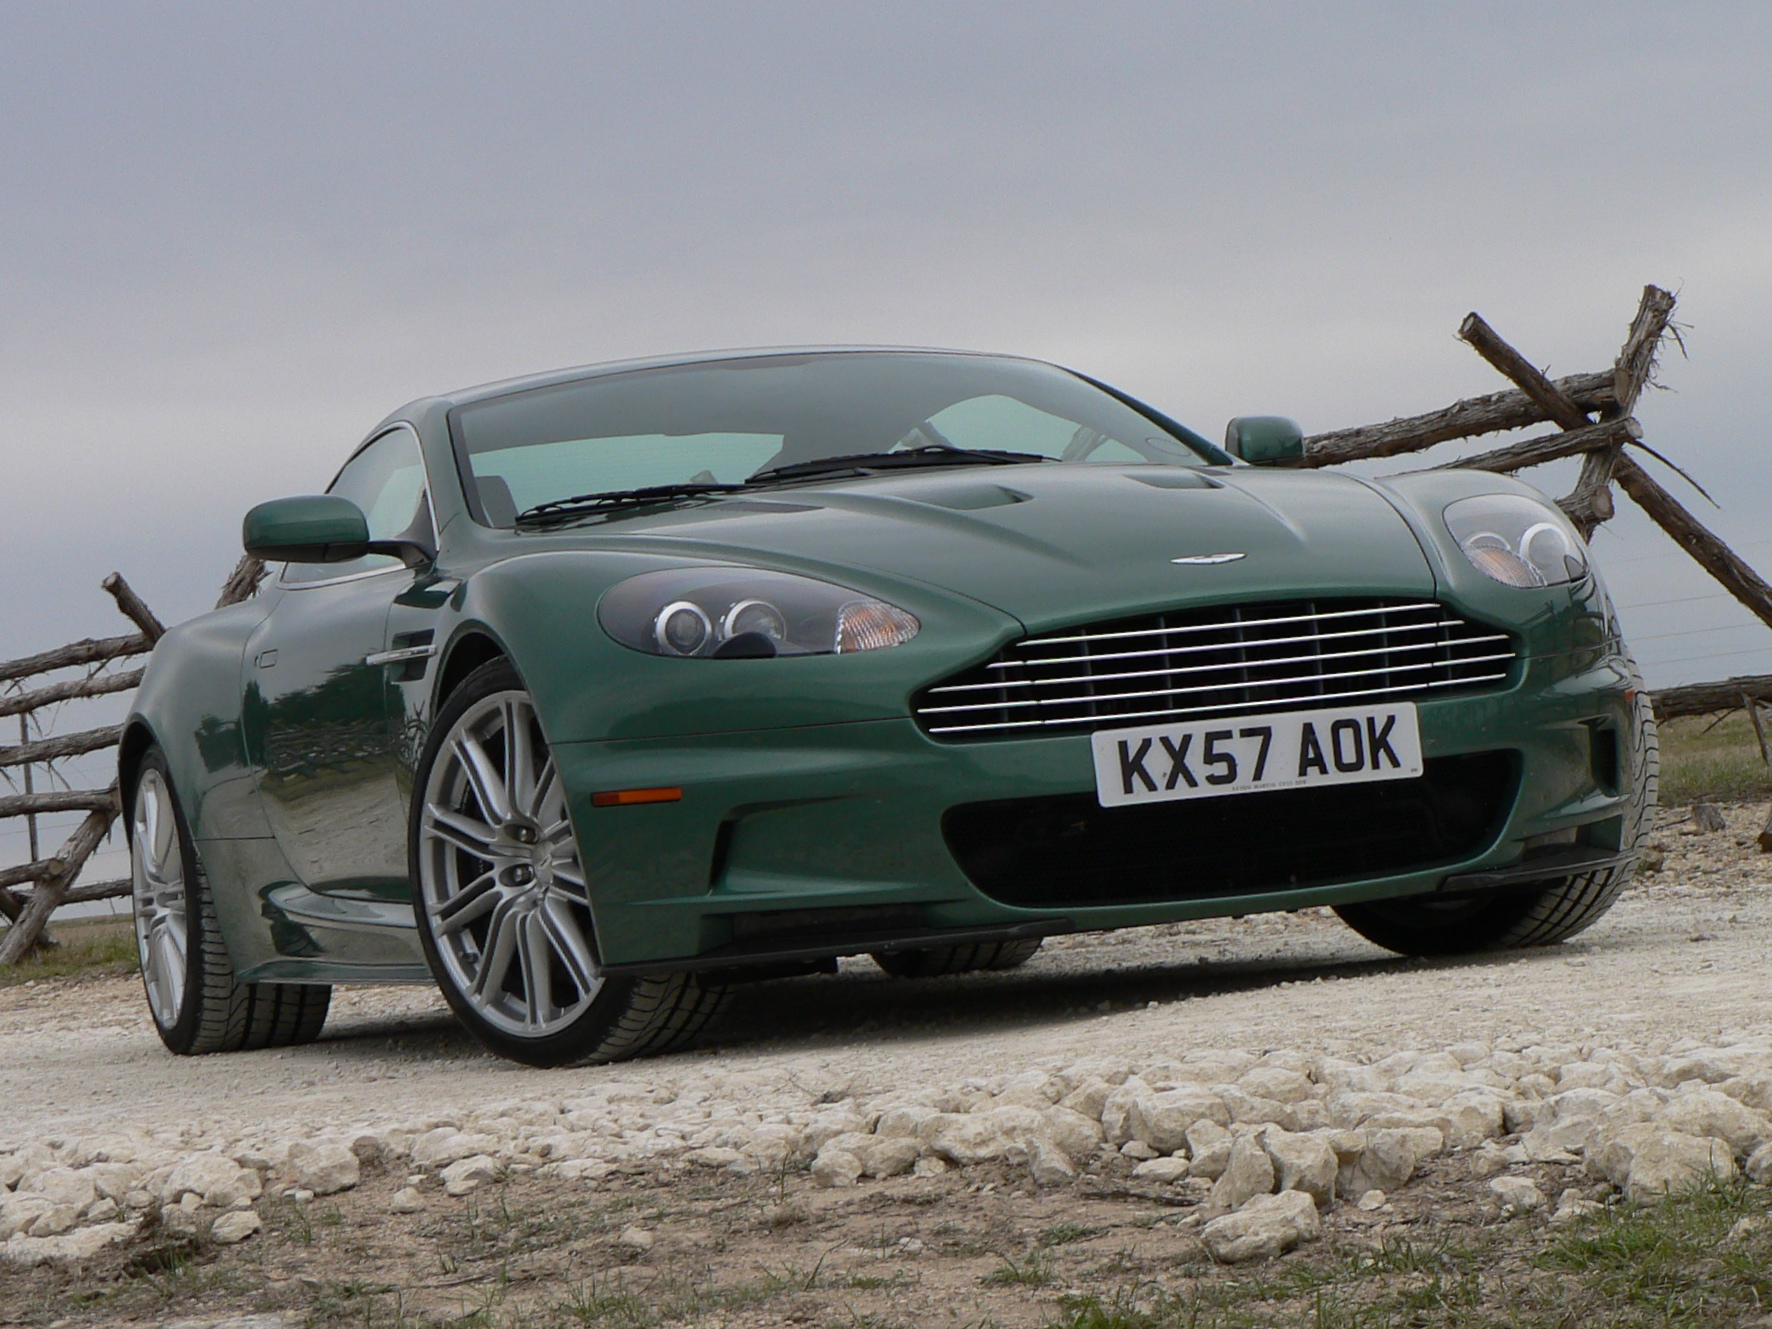 2010 Aston Martin DBS Coupe